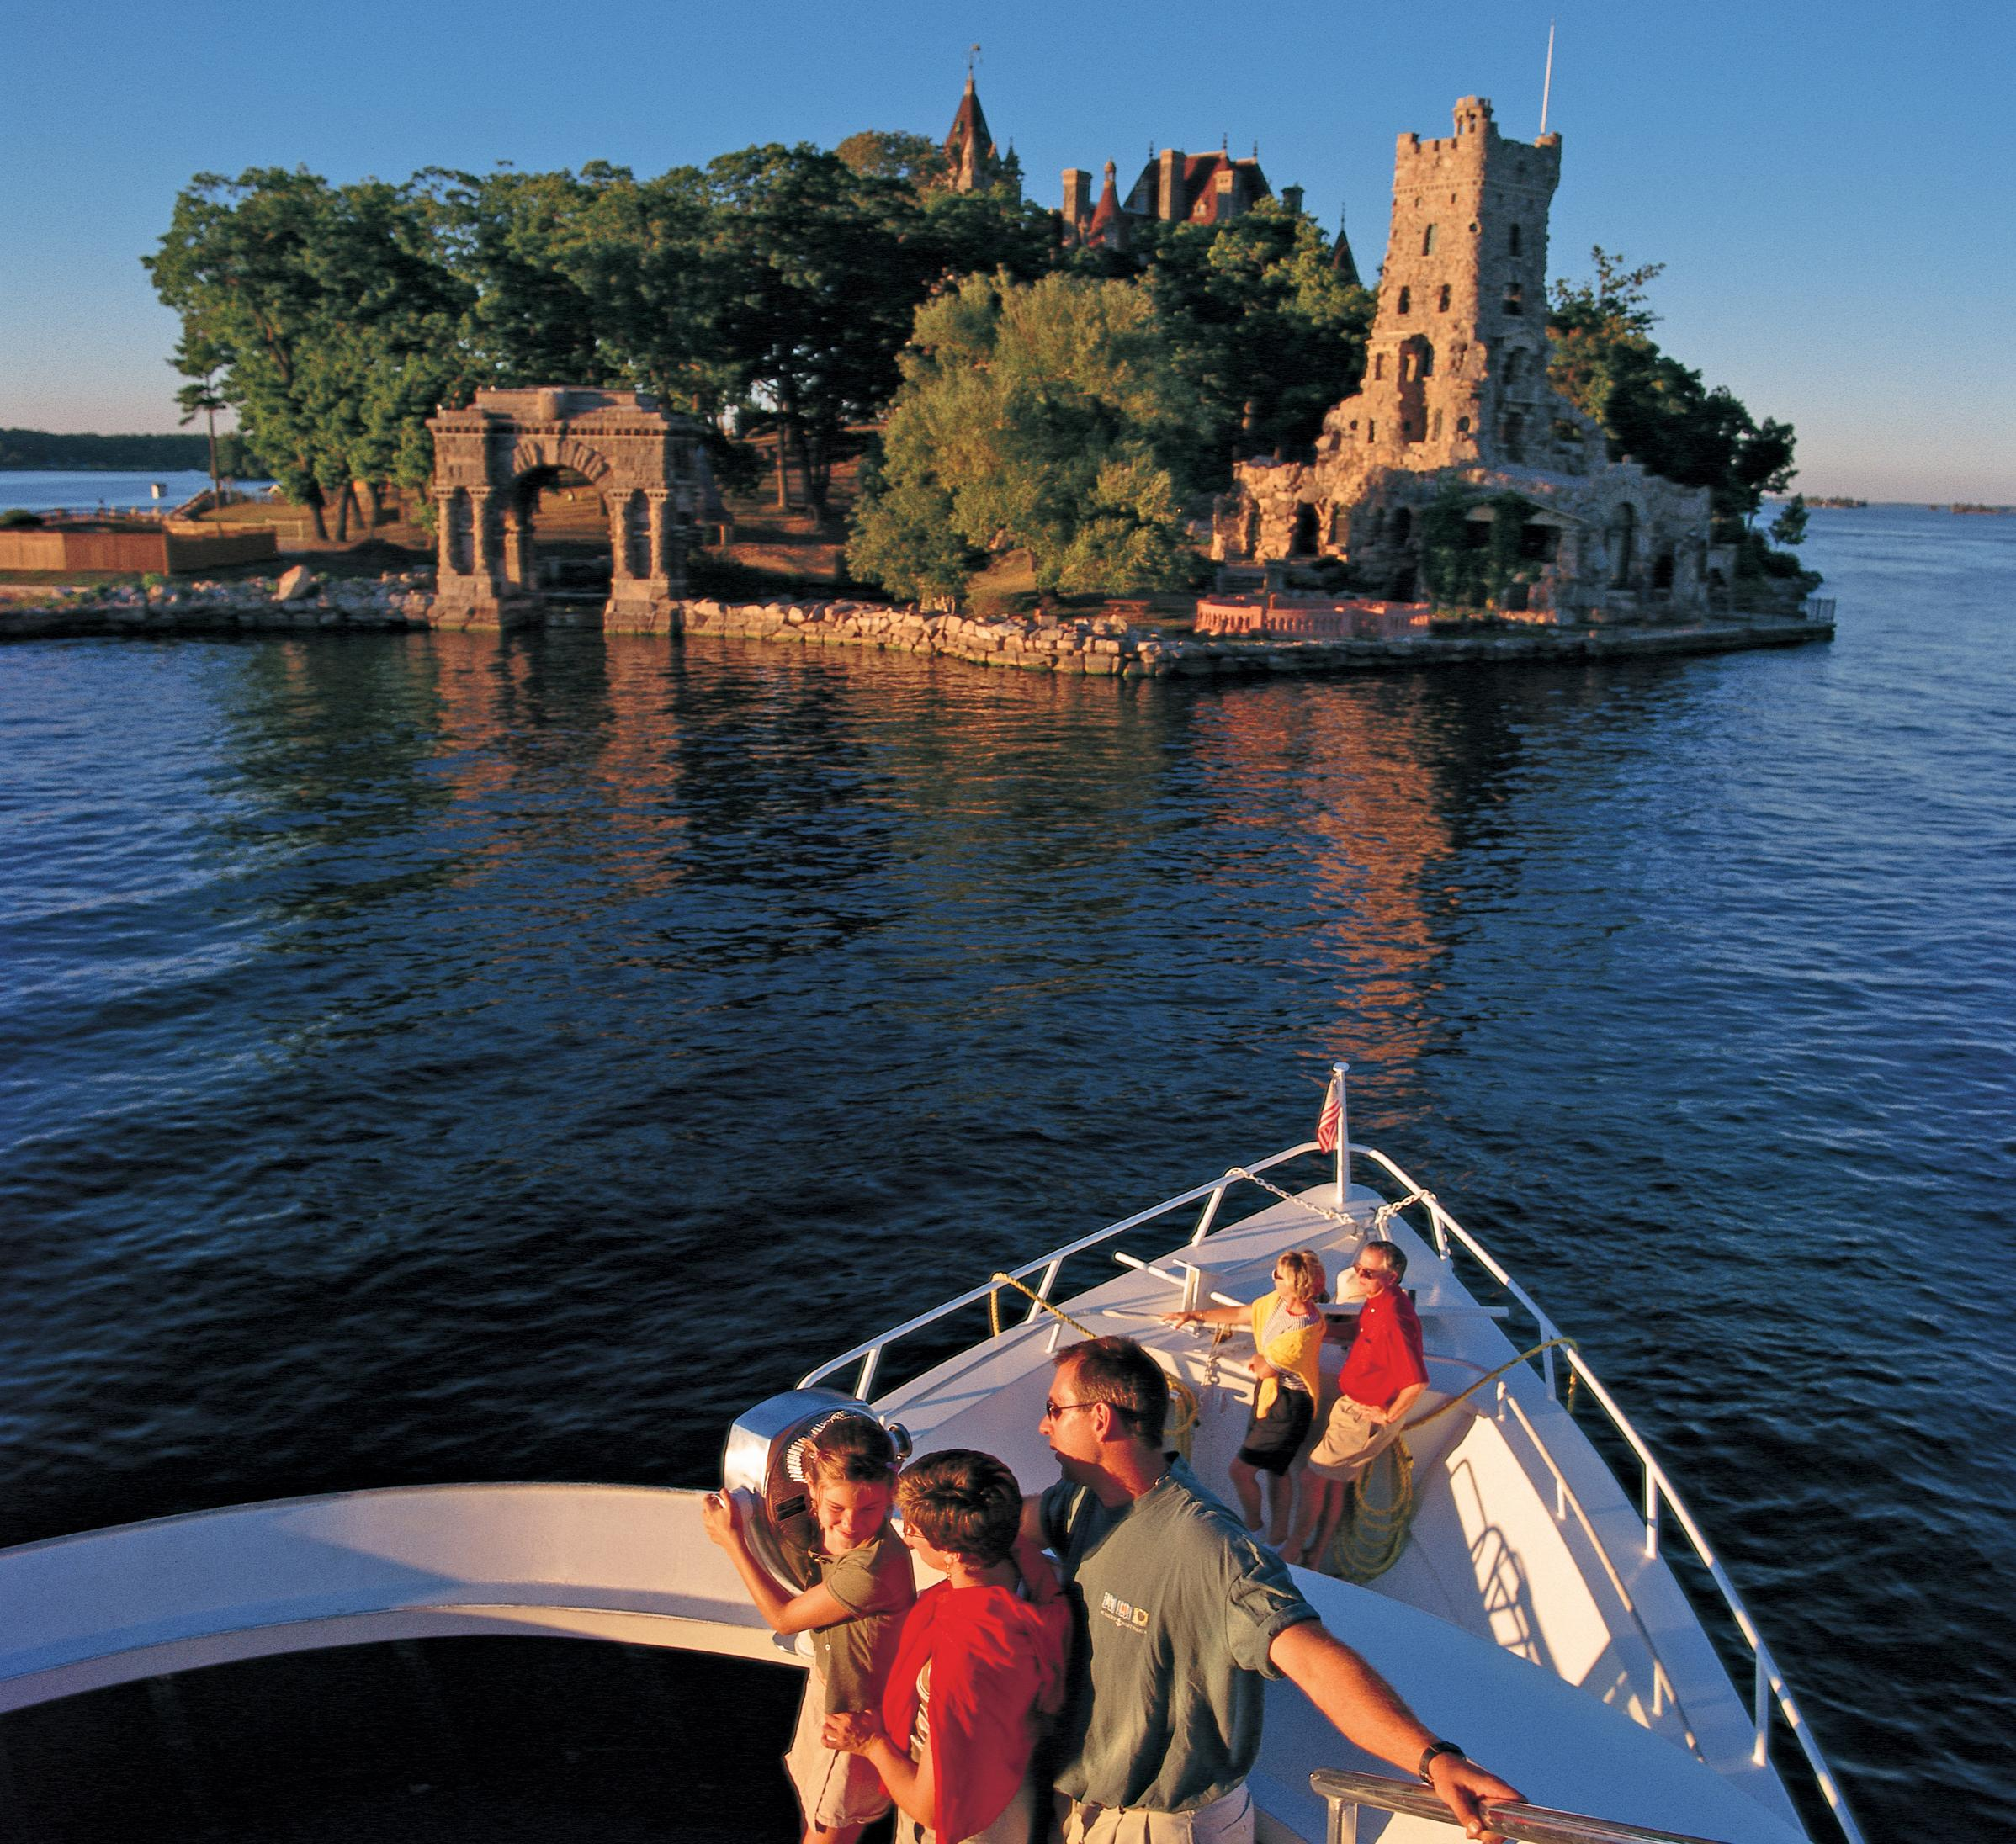 Thousand Island Cruise with guests